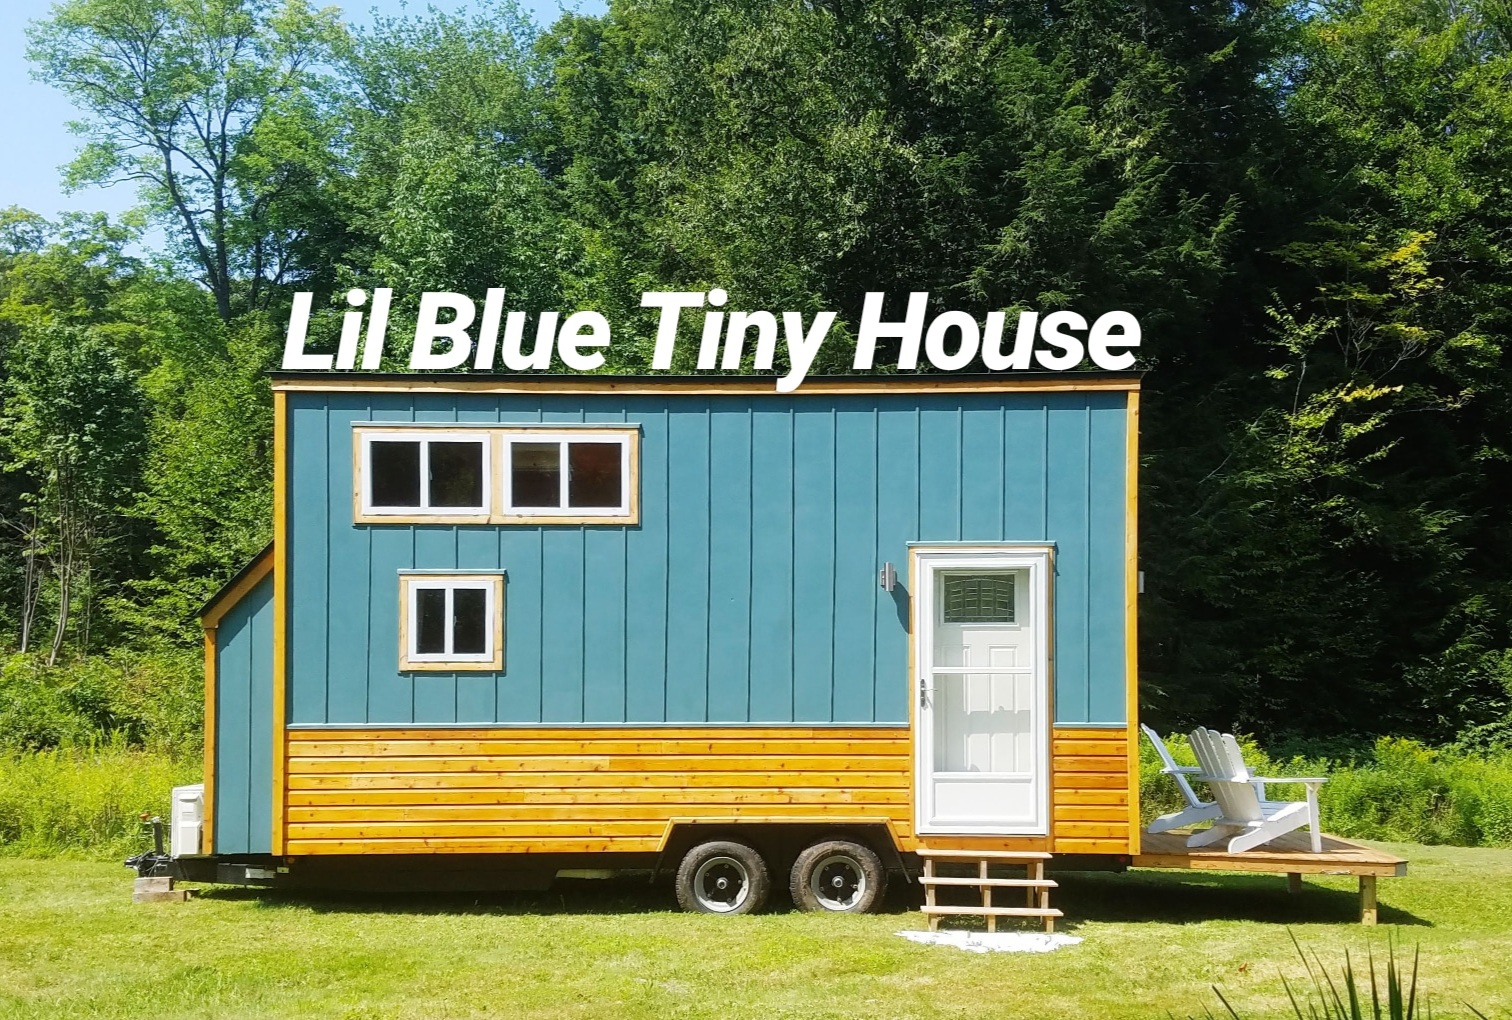 lil-blue-tiny-house.jpg